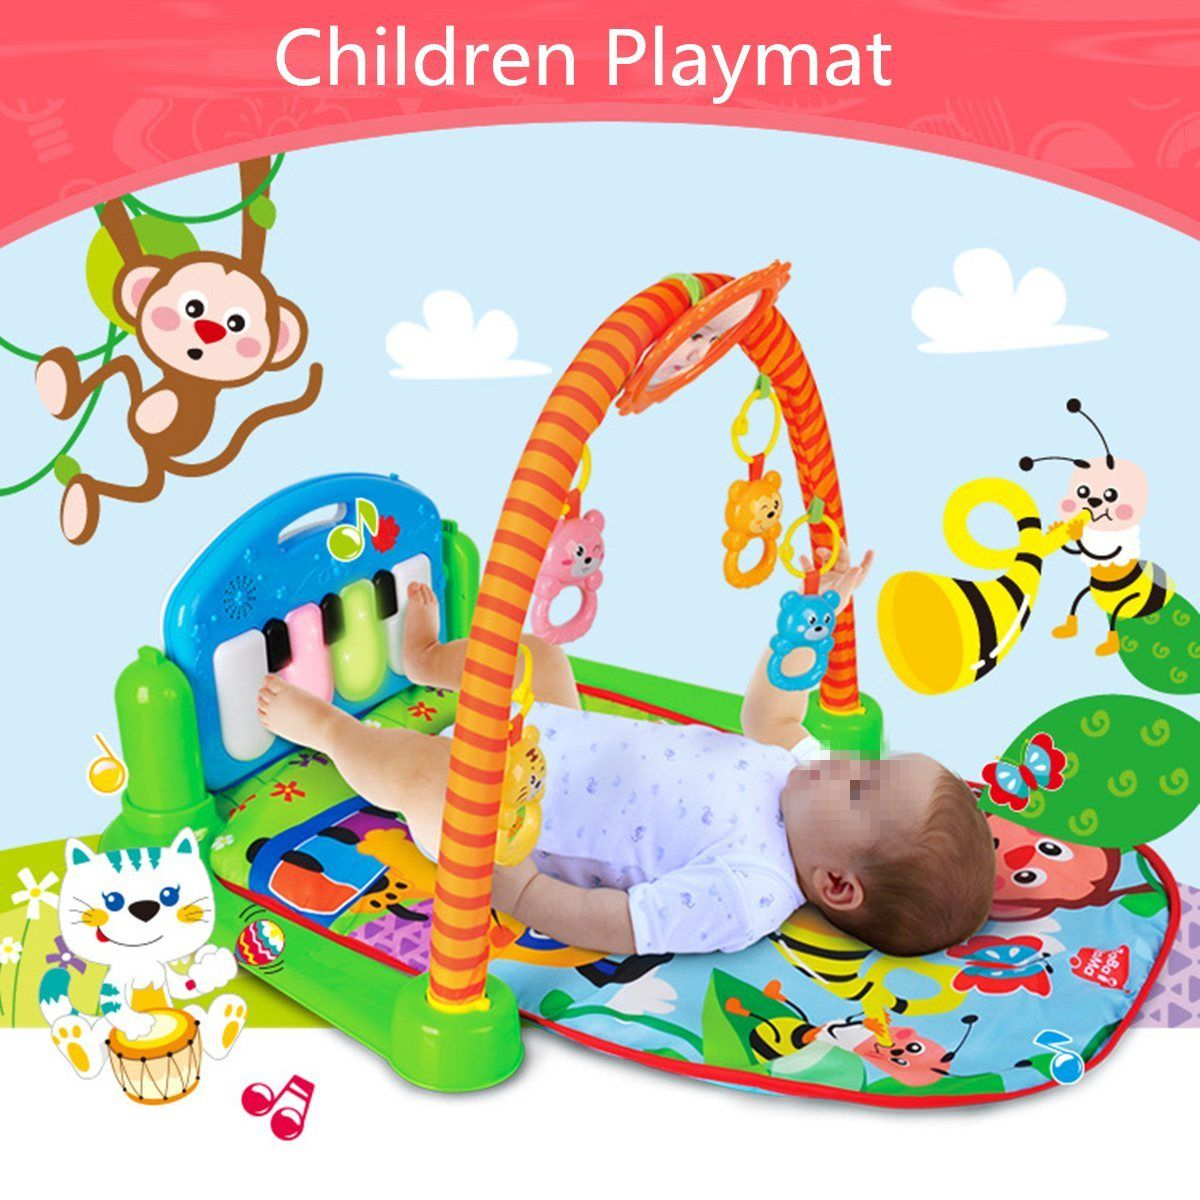 Tappeto Puzzle Baby Smile Rain Forest 3 In 1 Musical Lullaby Activity Playmate Toy